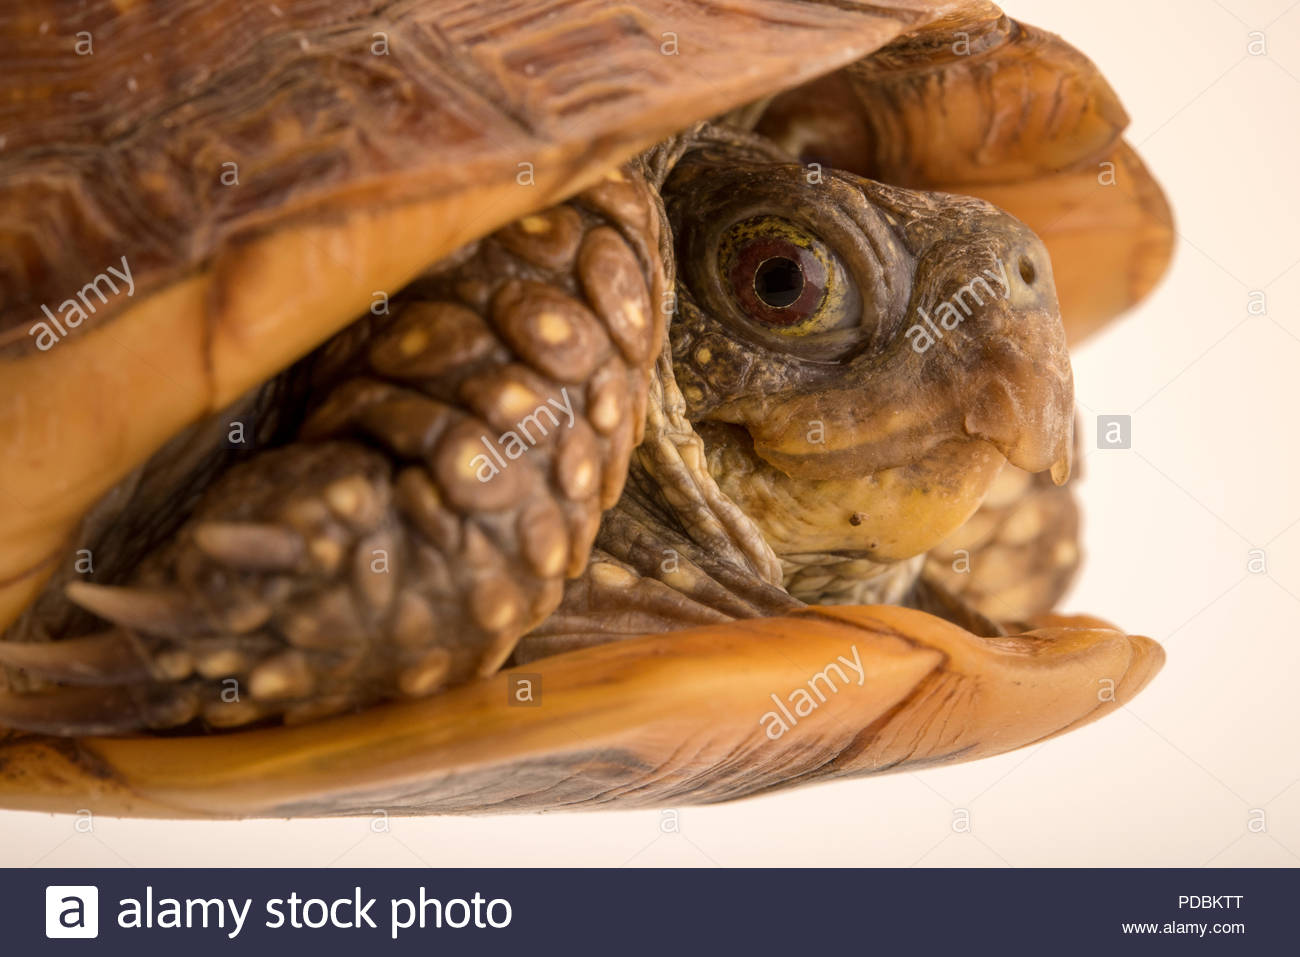 Northern spotted box turtle, Terrapene nelsoni klauberi, at the Arizona-Sonora Desert Museum. - Stock Image